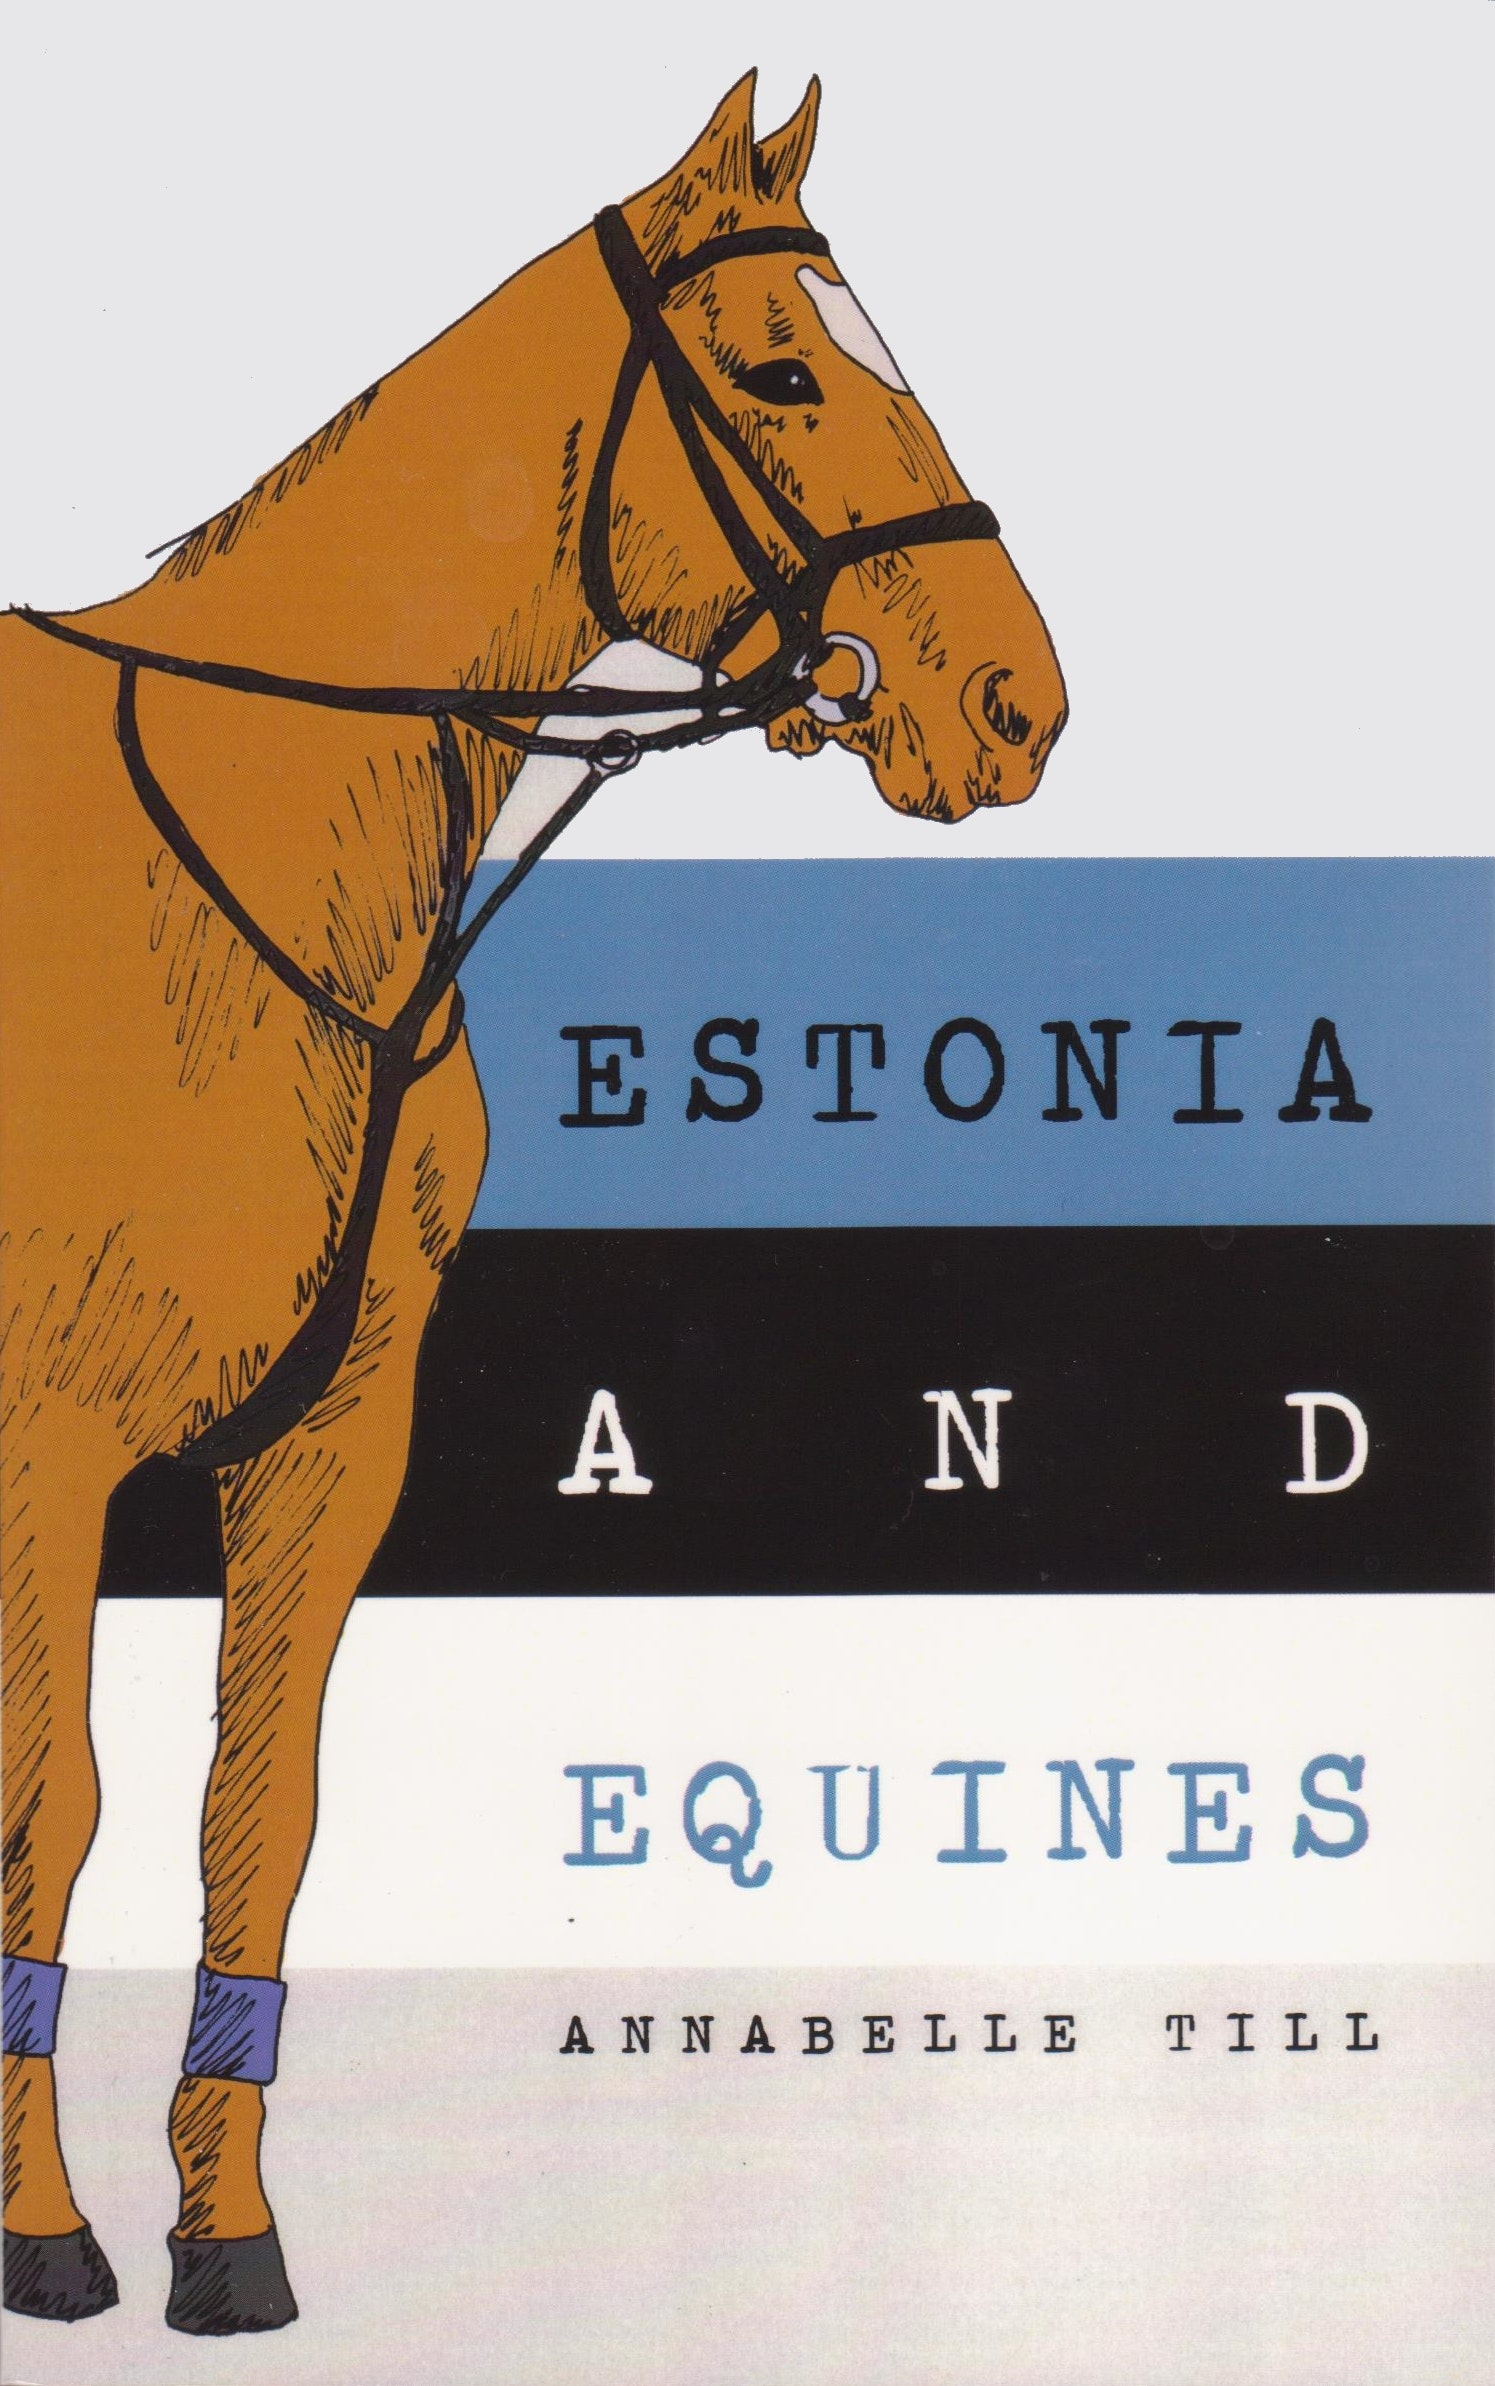 Estonia and Equines sweepstakes